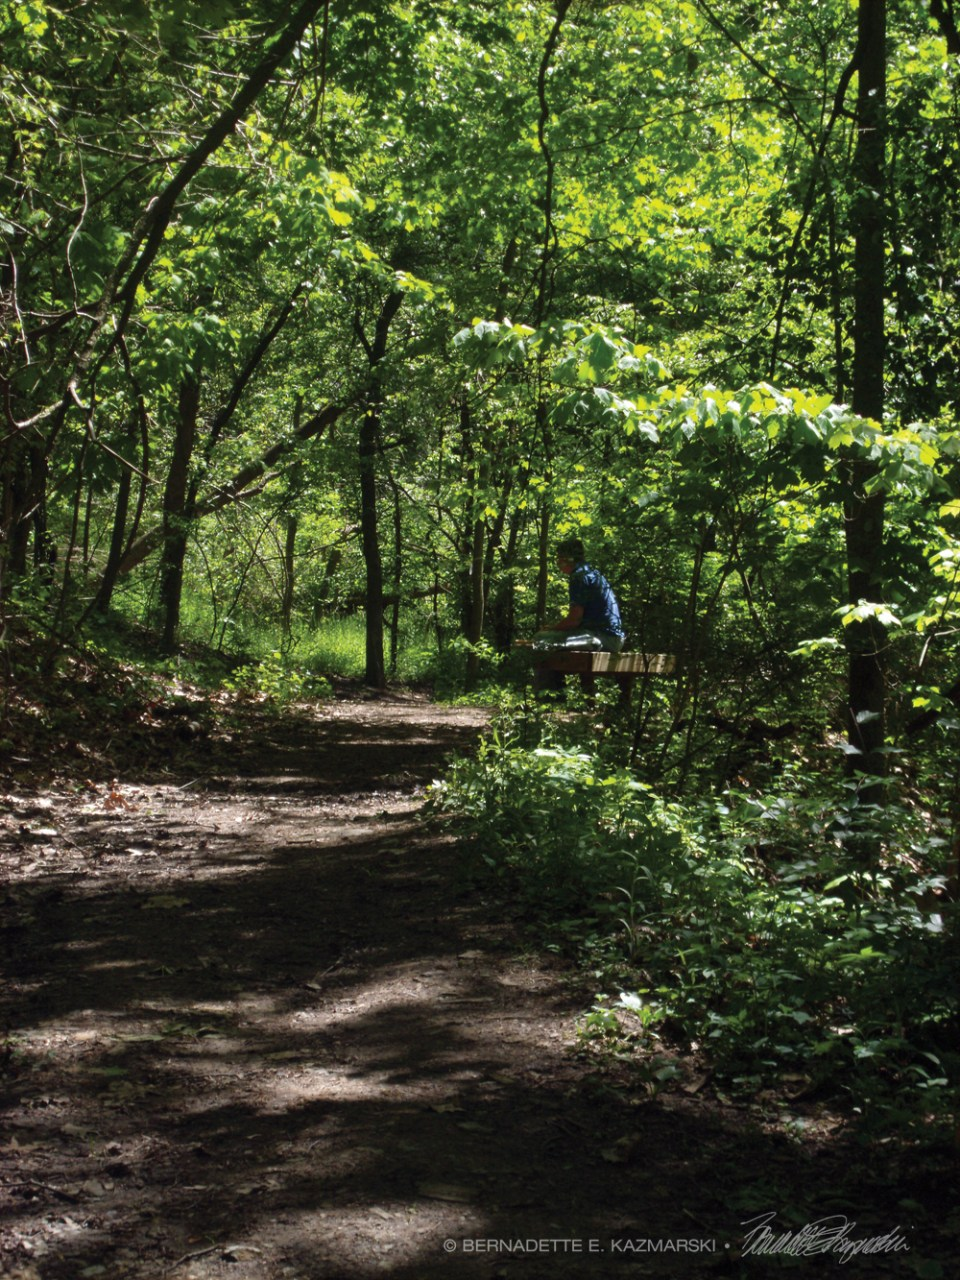 My brother Mark enjoying the woods along a trail in Scott Township.